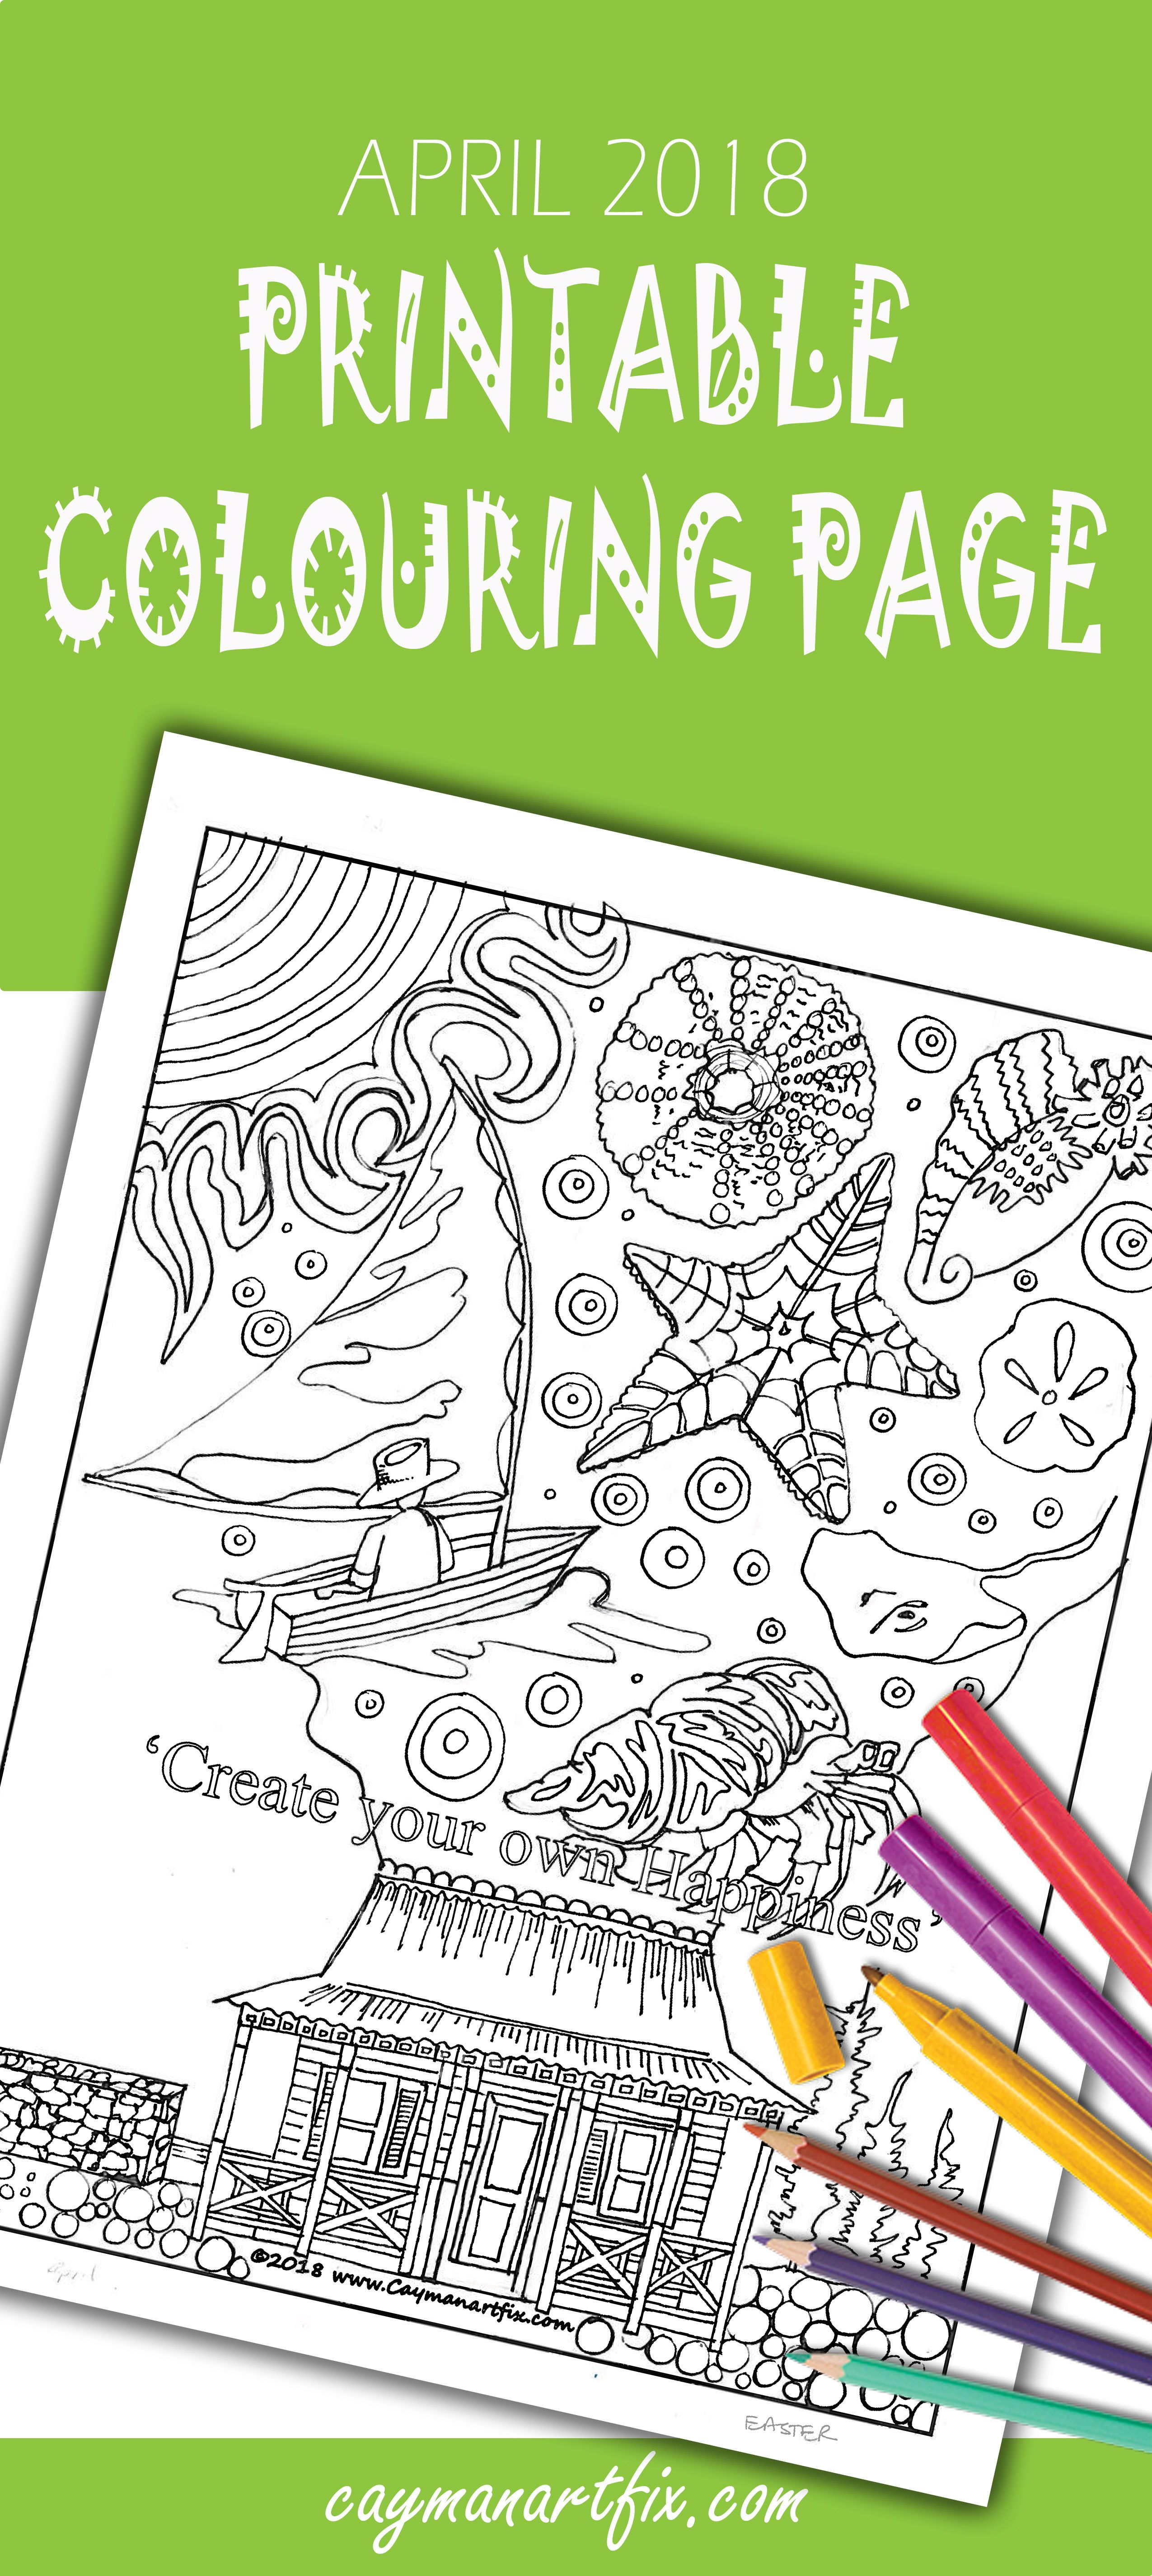 This April Colouring Page Has So Much For You To Enjoy From The Catboats